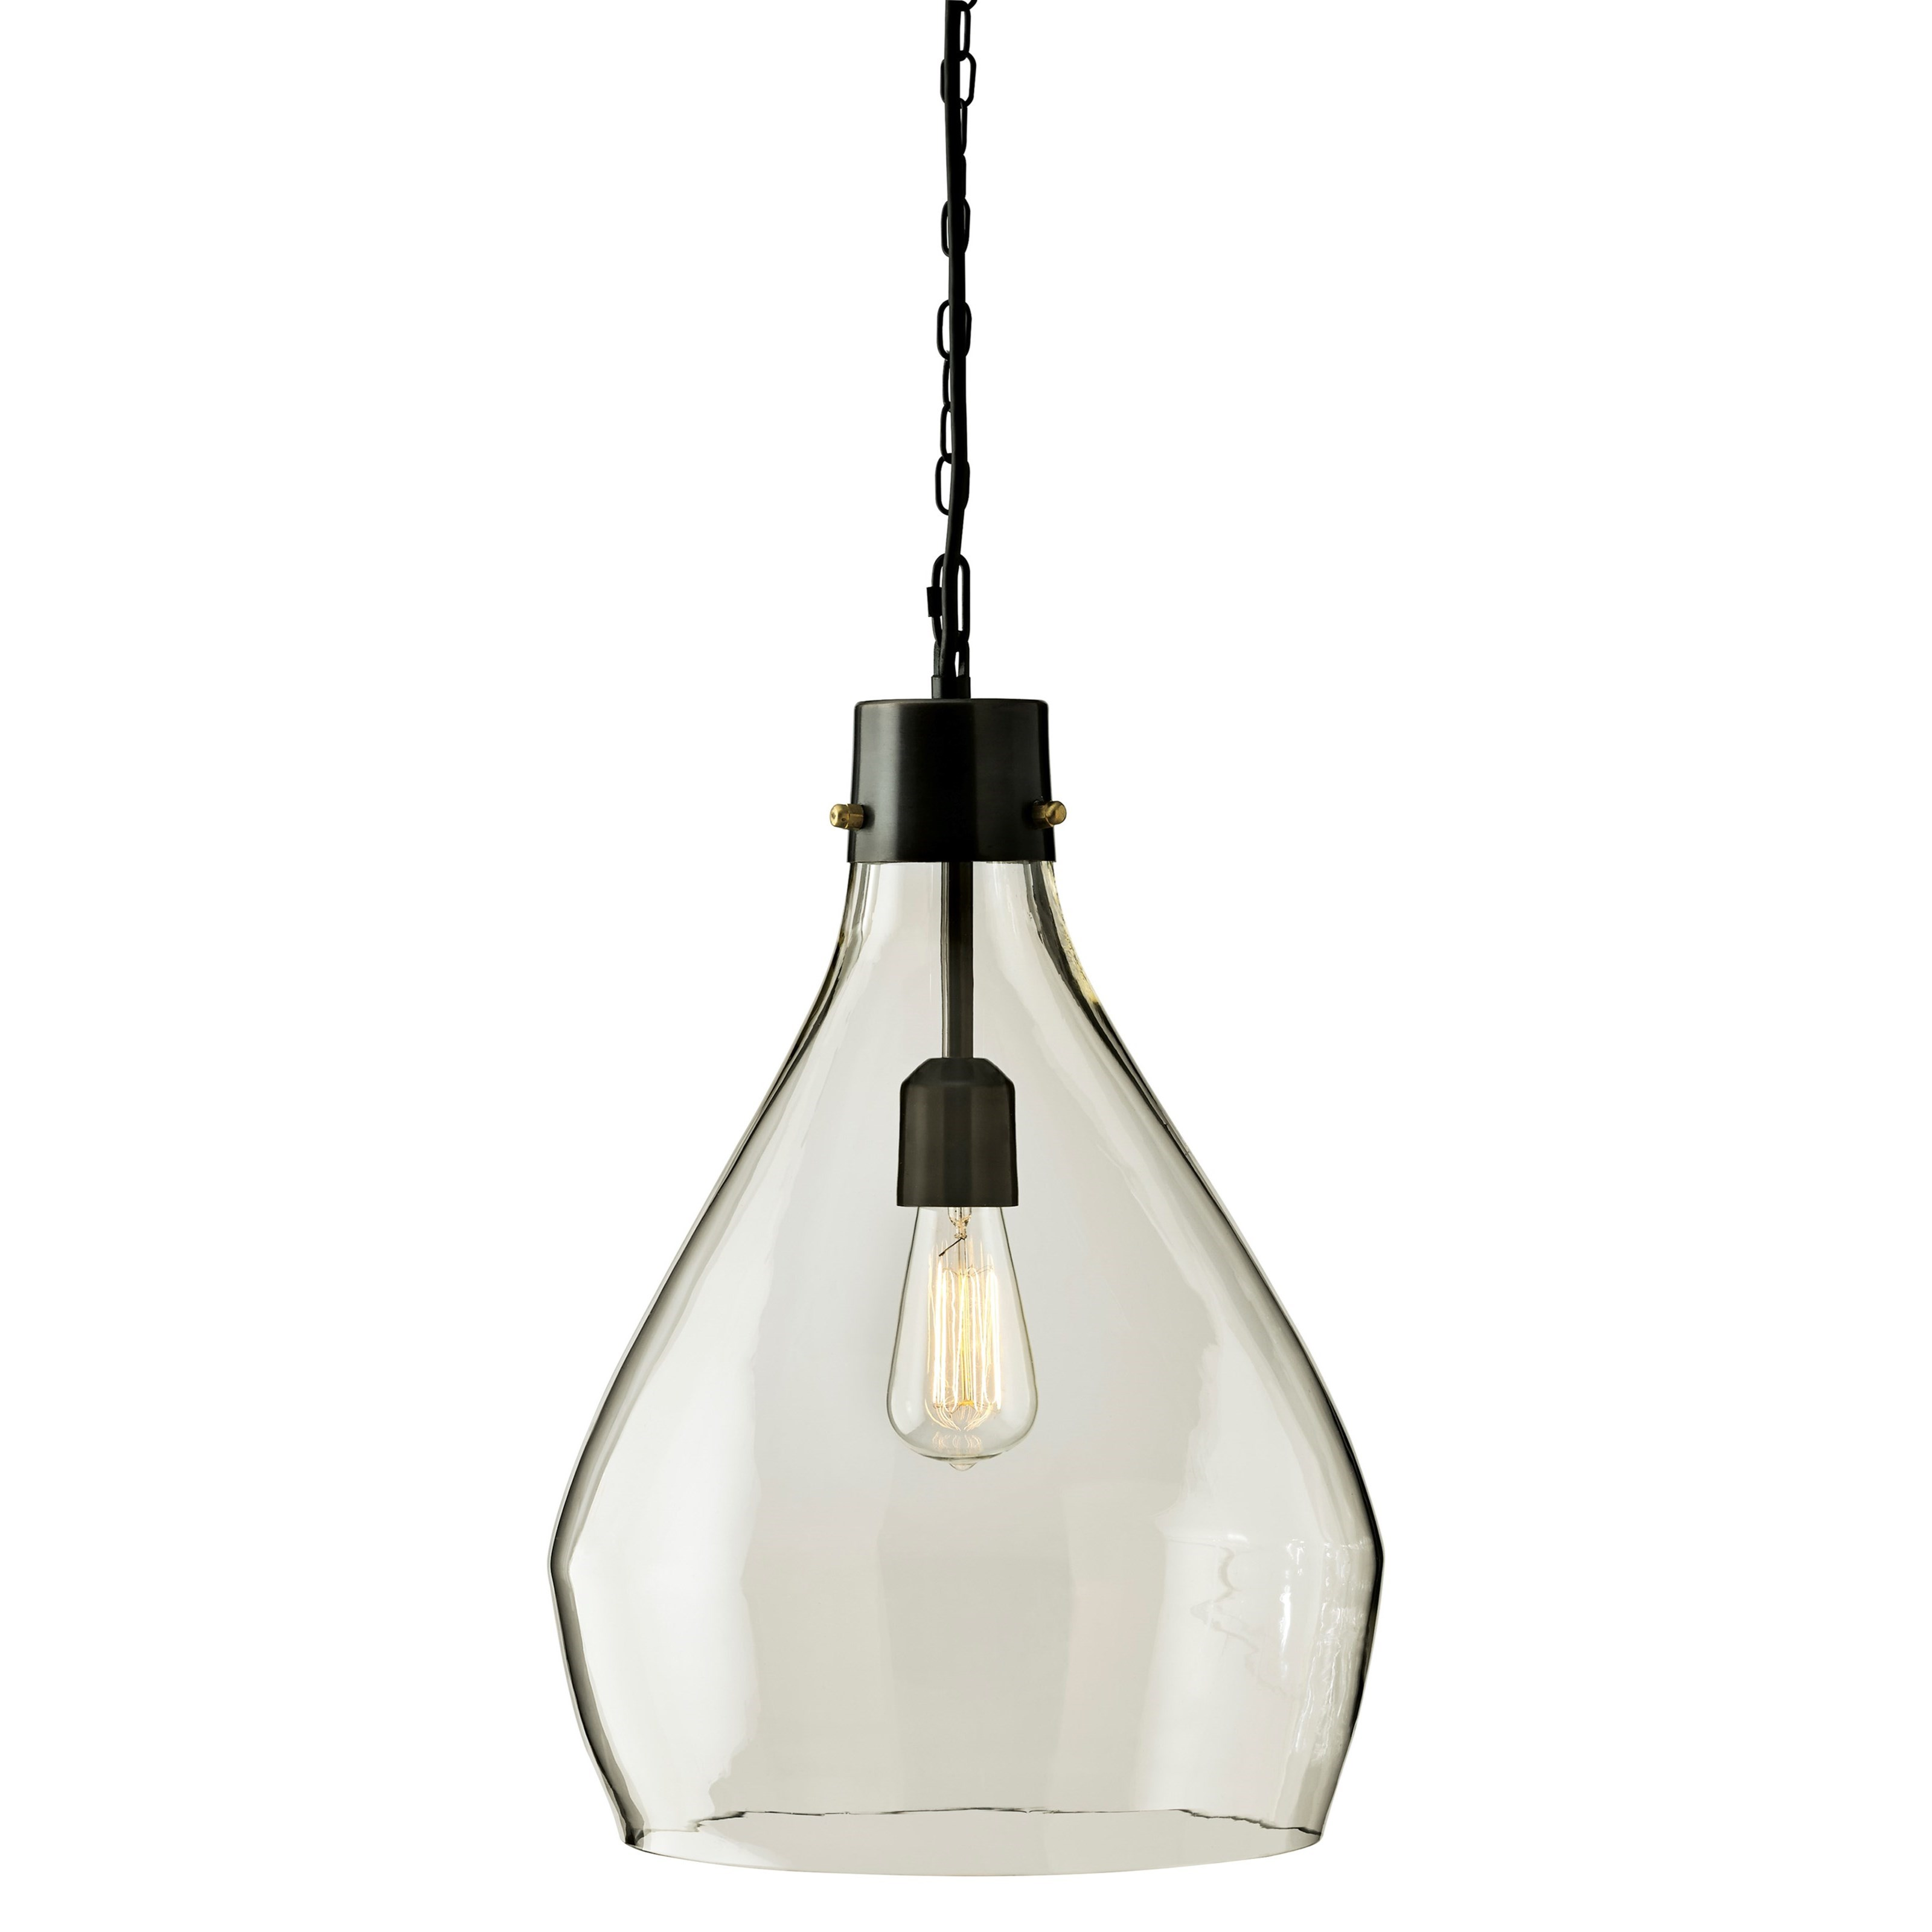 Clear Glass Pendant Light Signature Design By Ashley Pendant Lights L000468 Avalbane